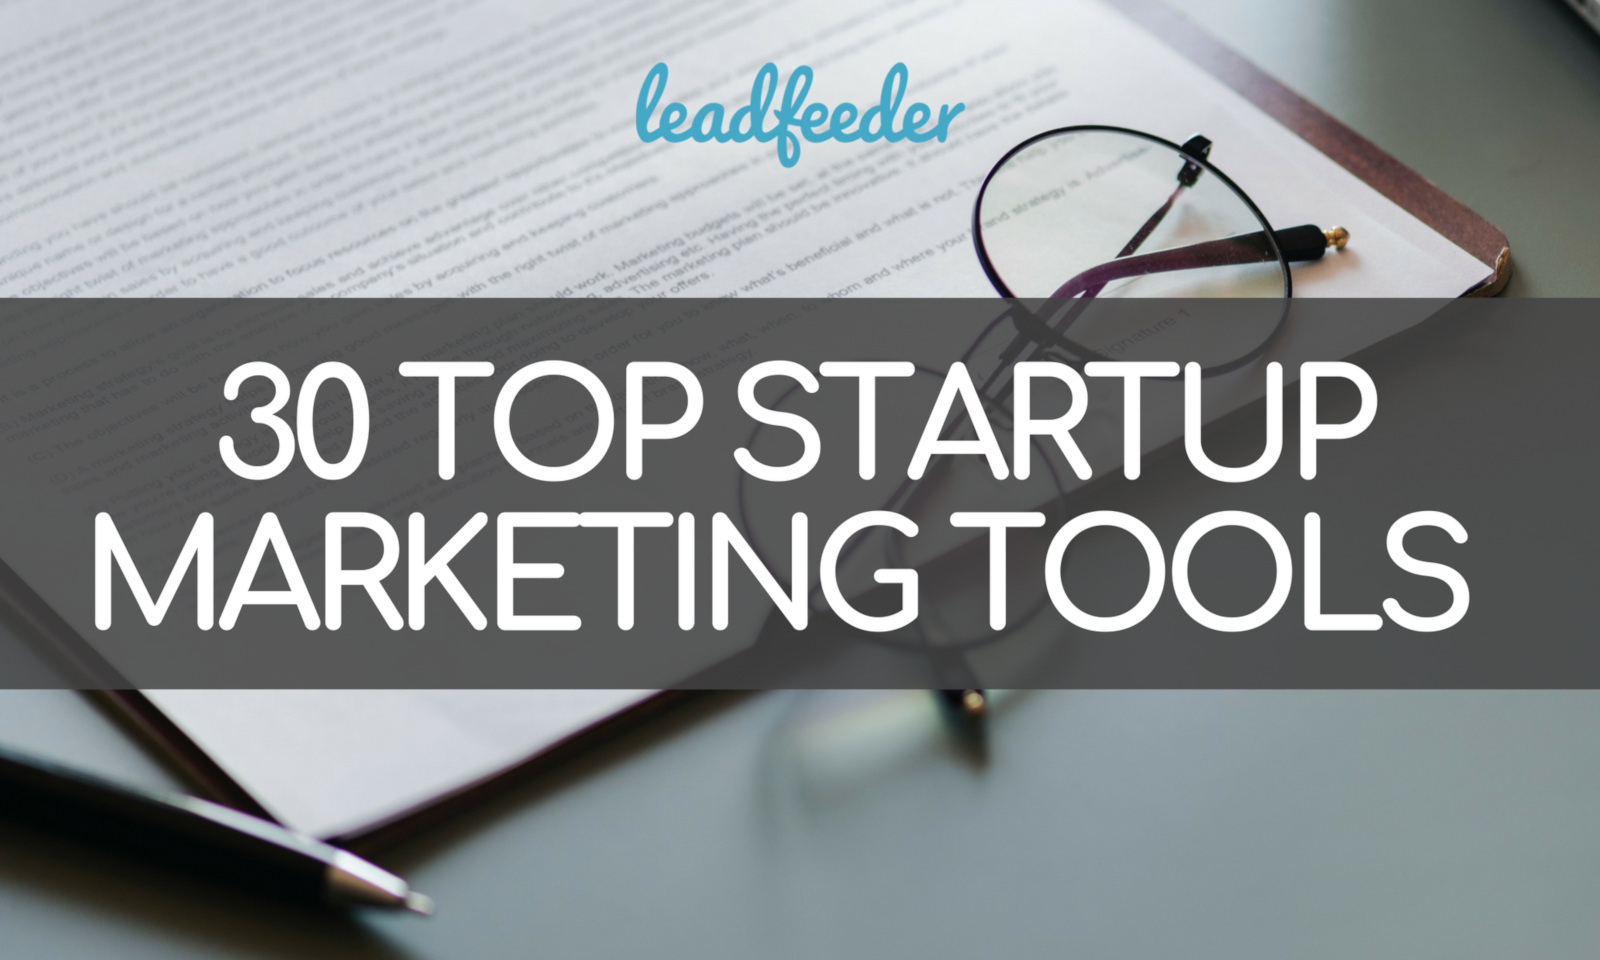 30 Top Startup Marketing Tools to Build and Scale Your Business